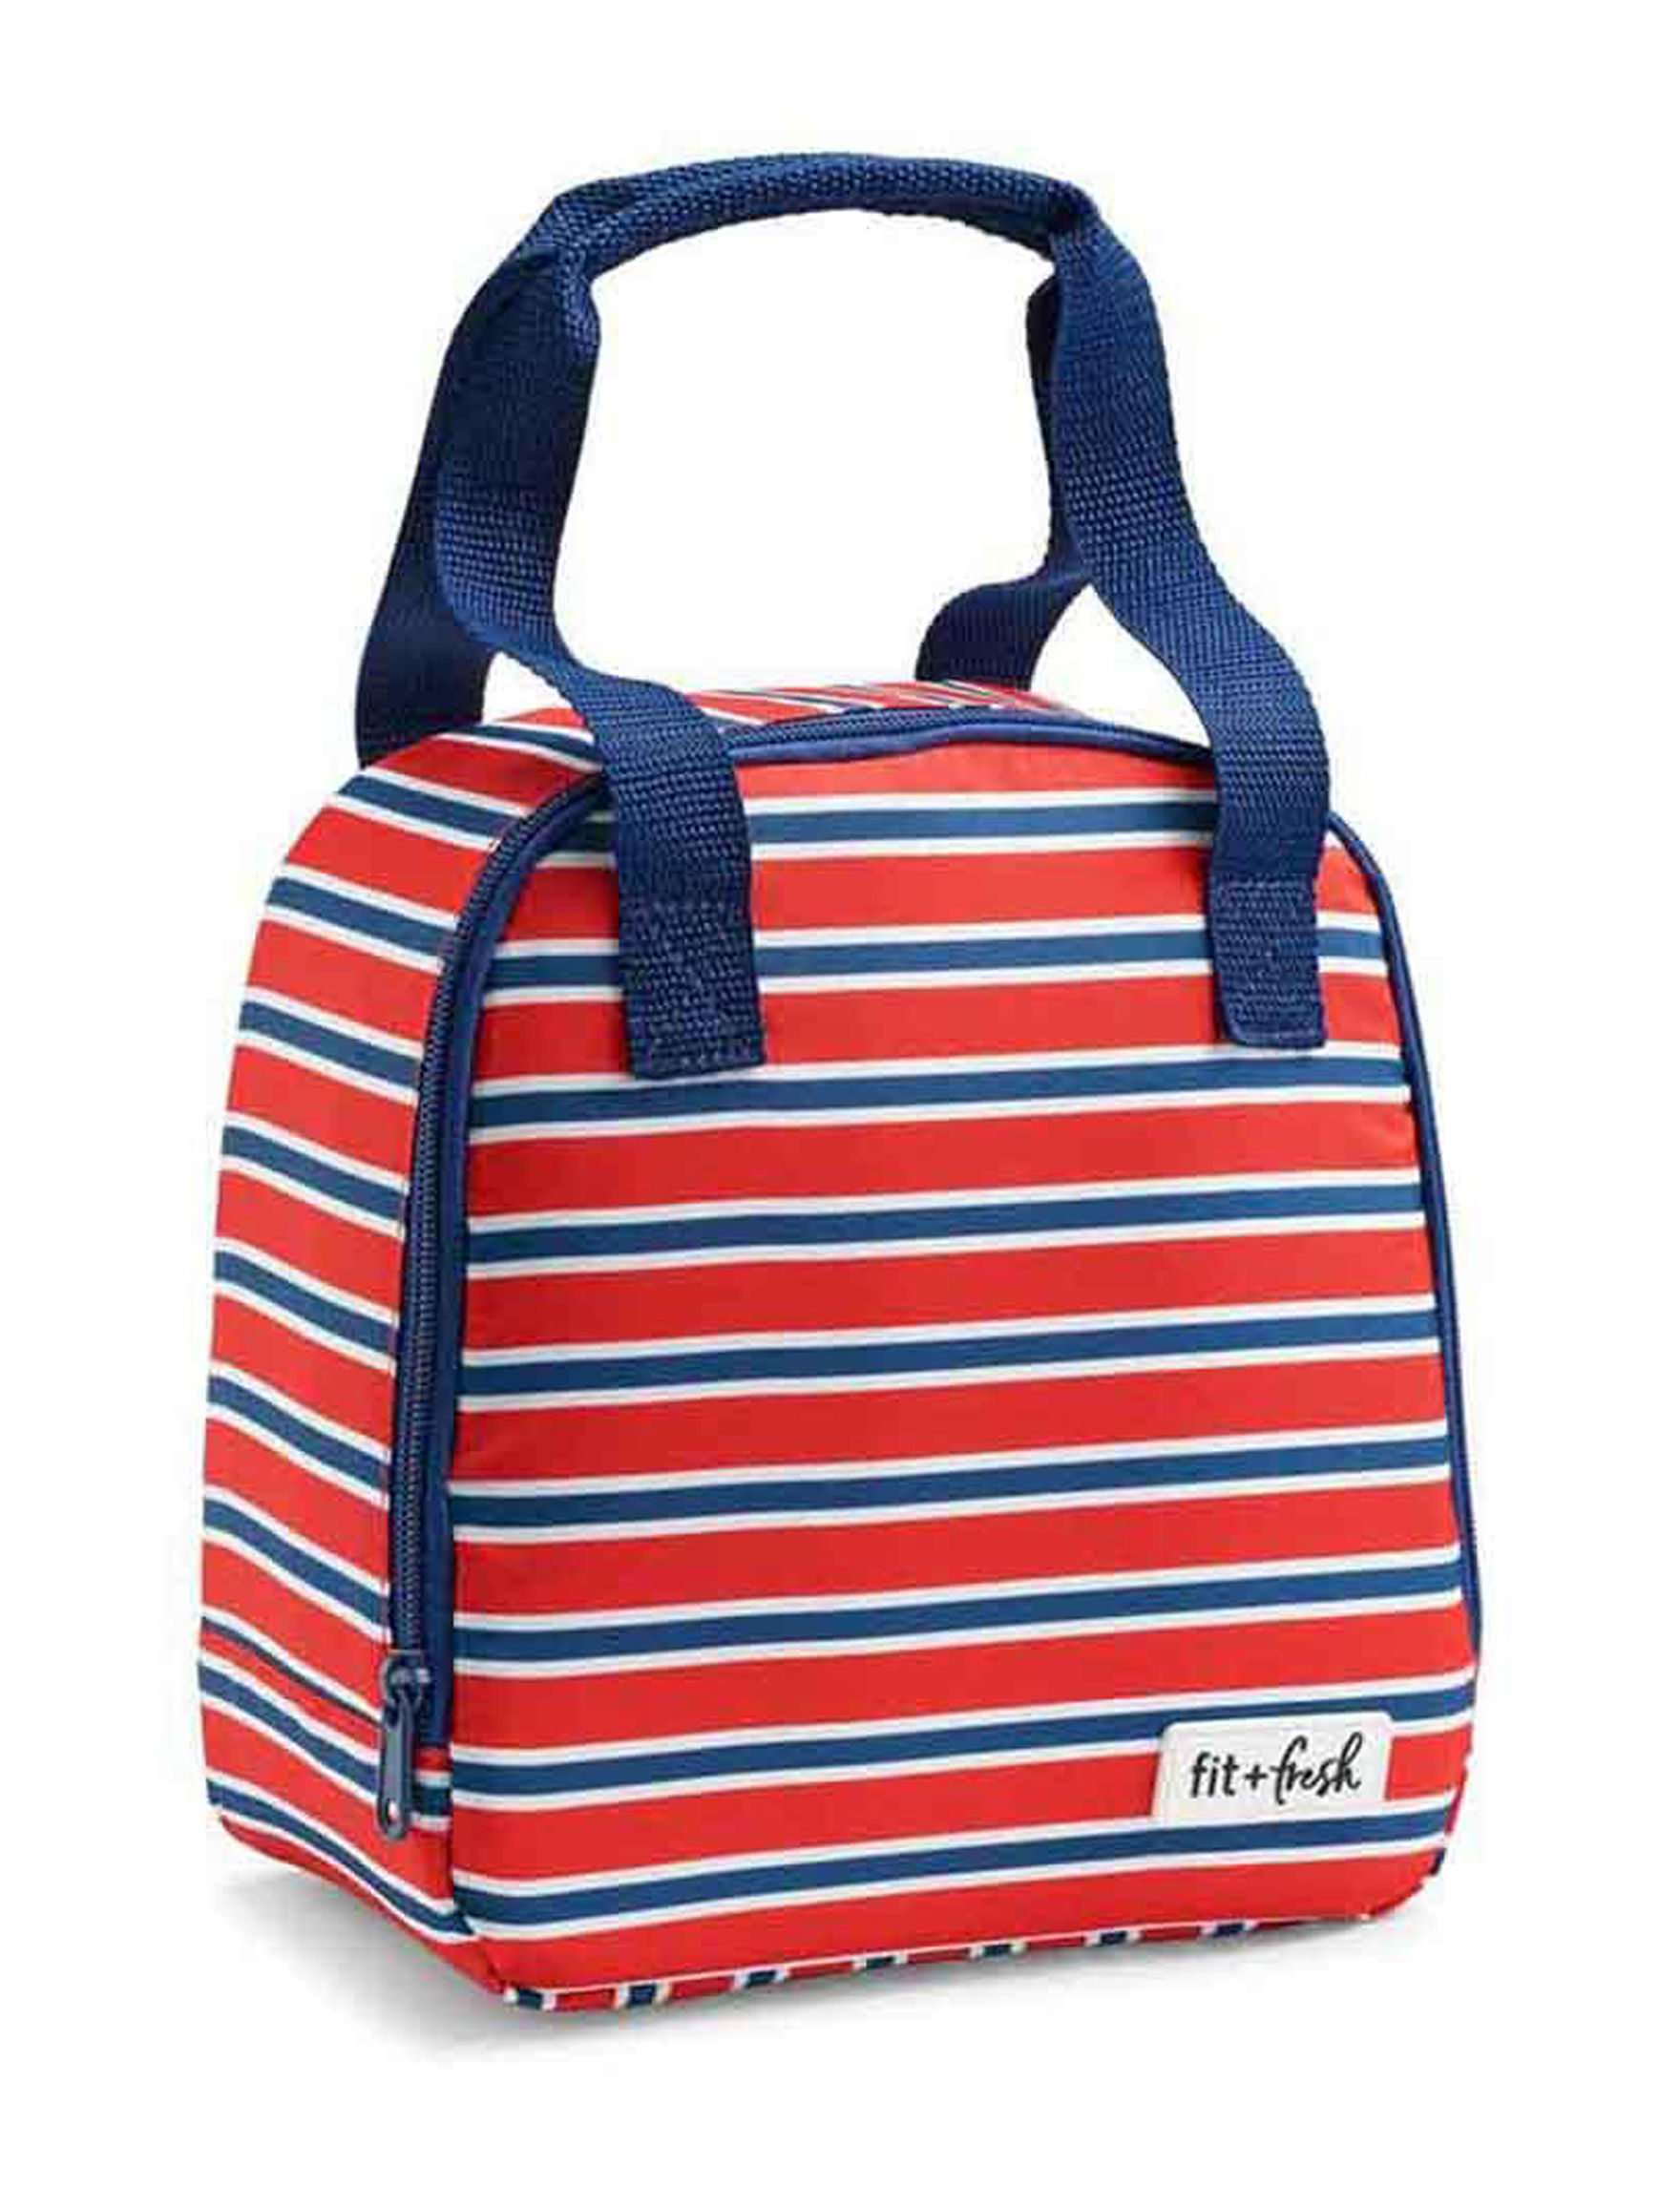 Fit & Fresh Blue / Red Lunch Boxes & Bags Kitchen Storage & Organization